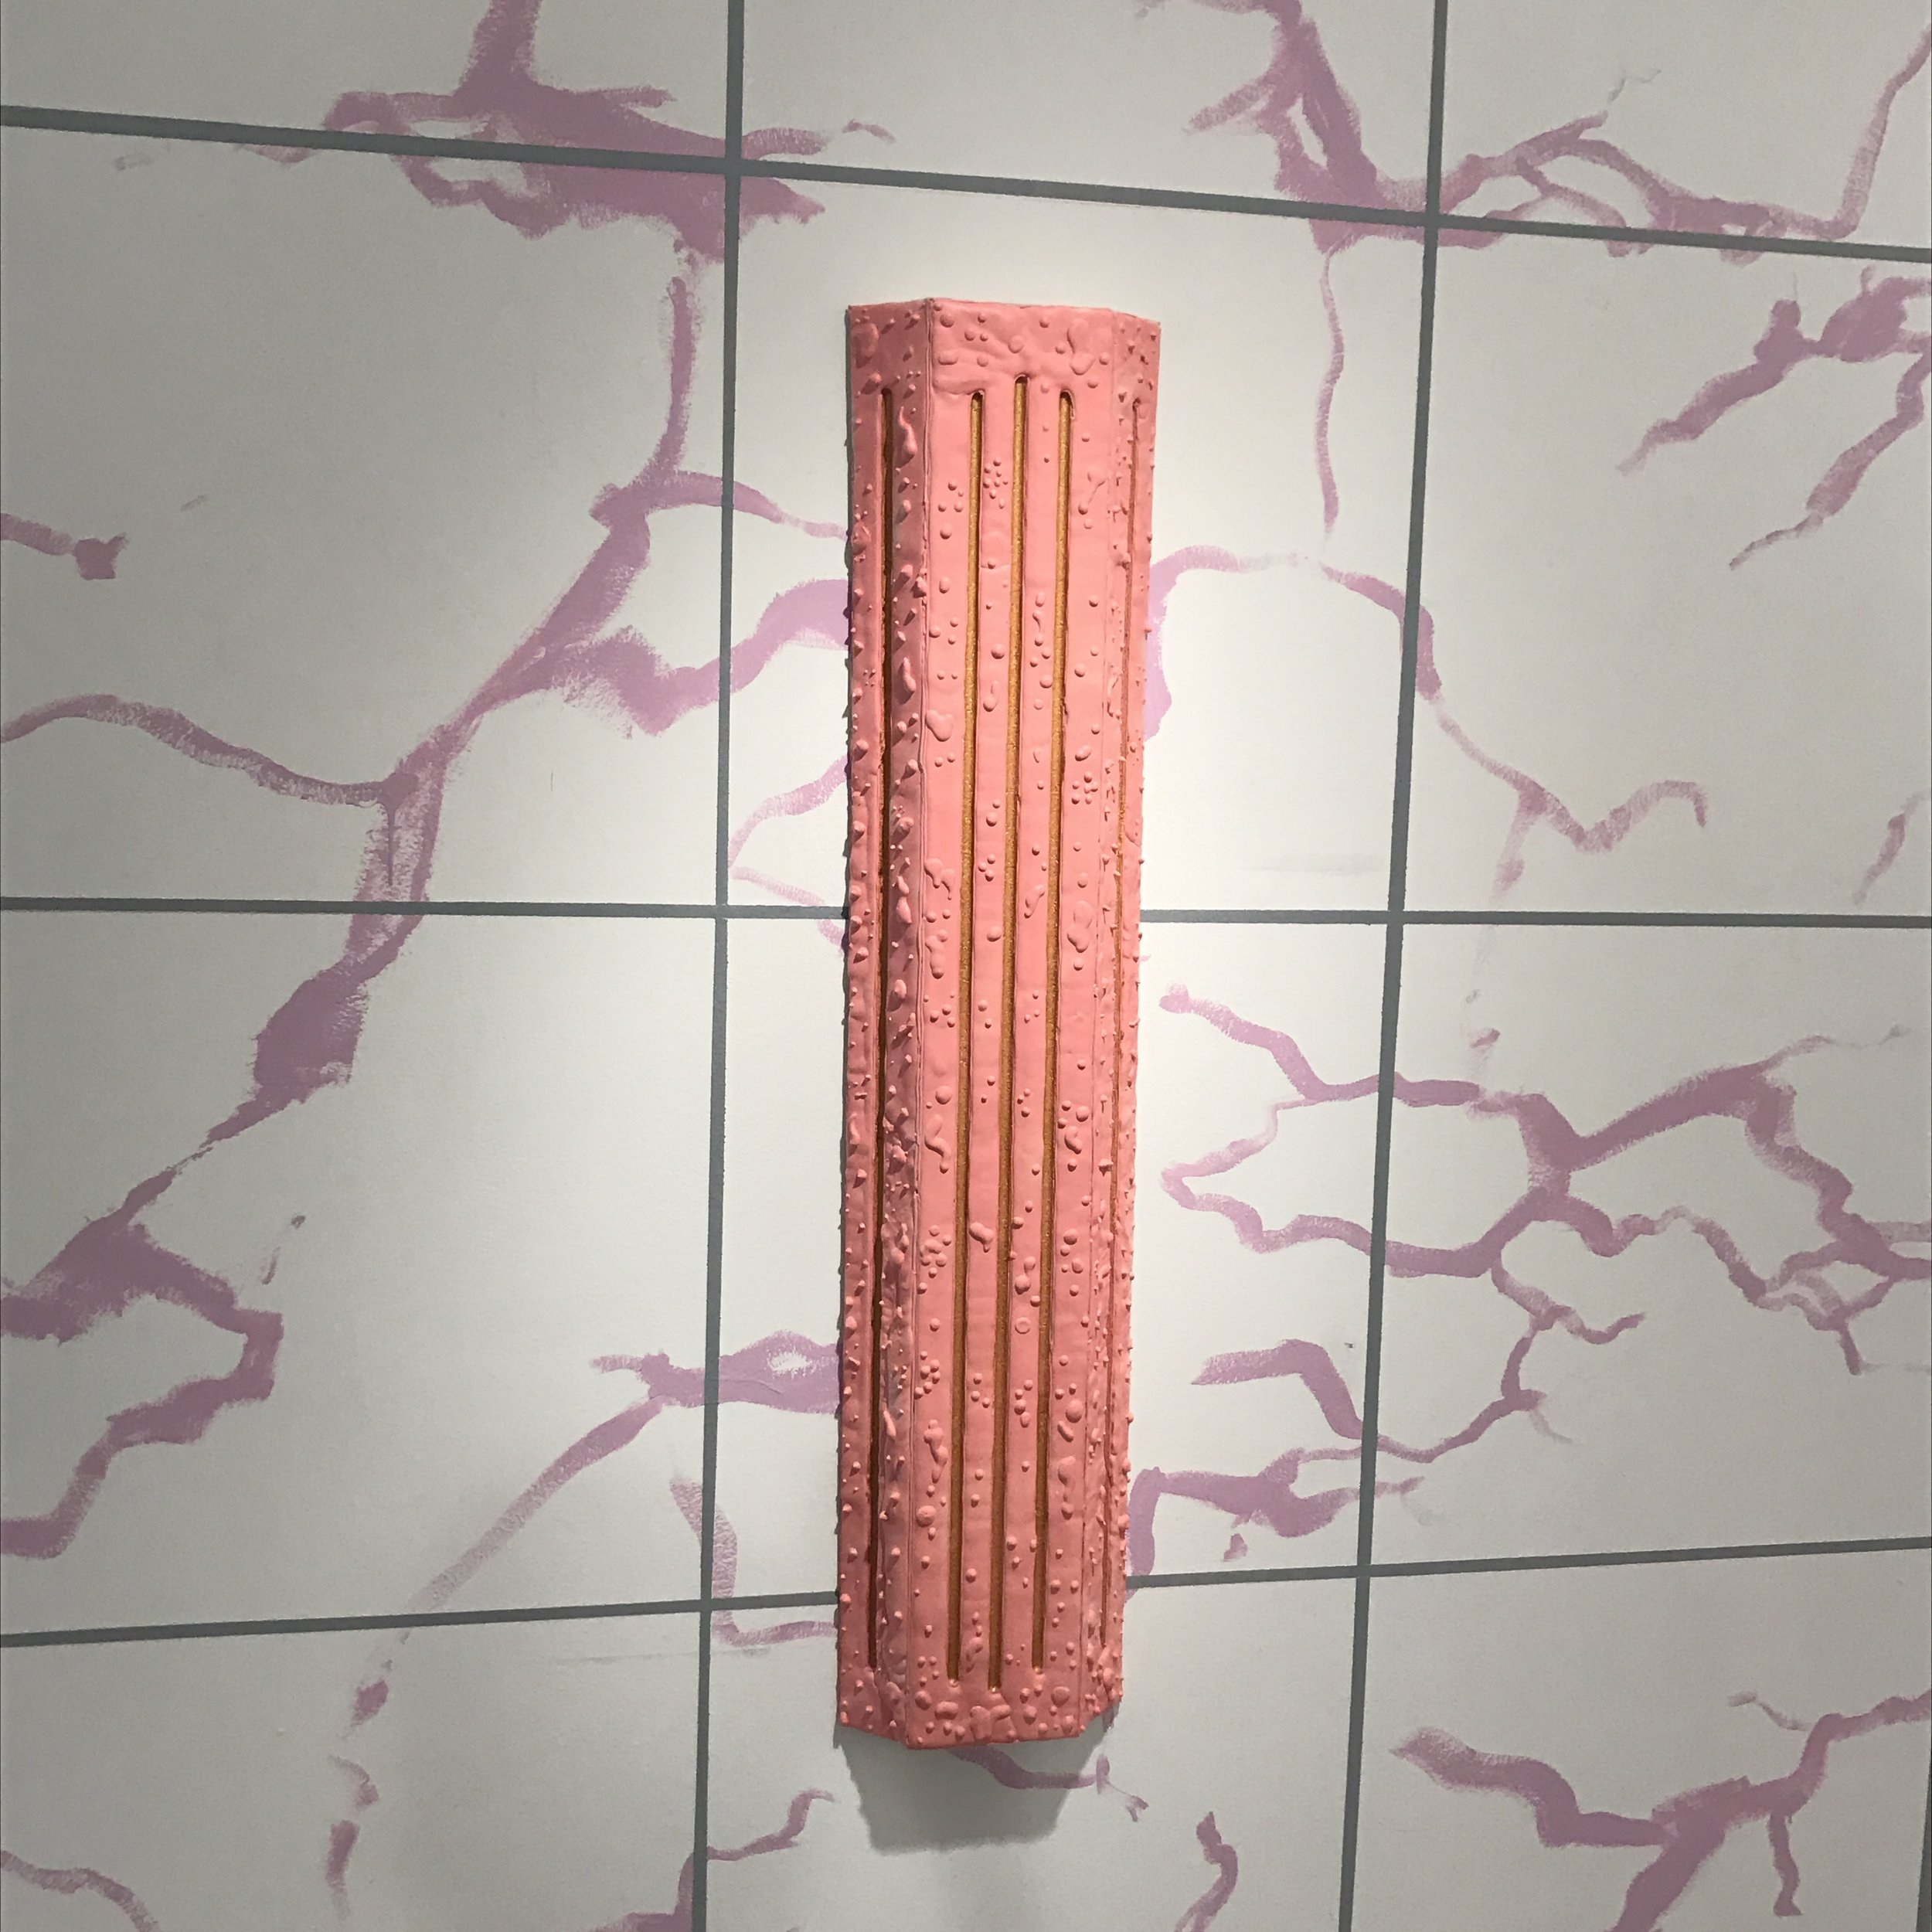 Blushing Column (1 of 6)